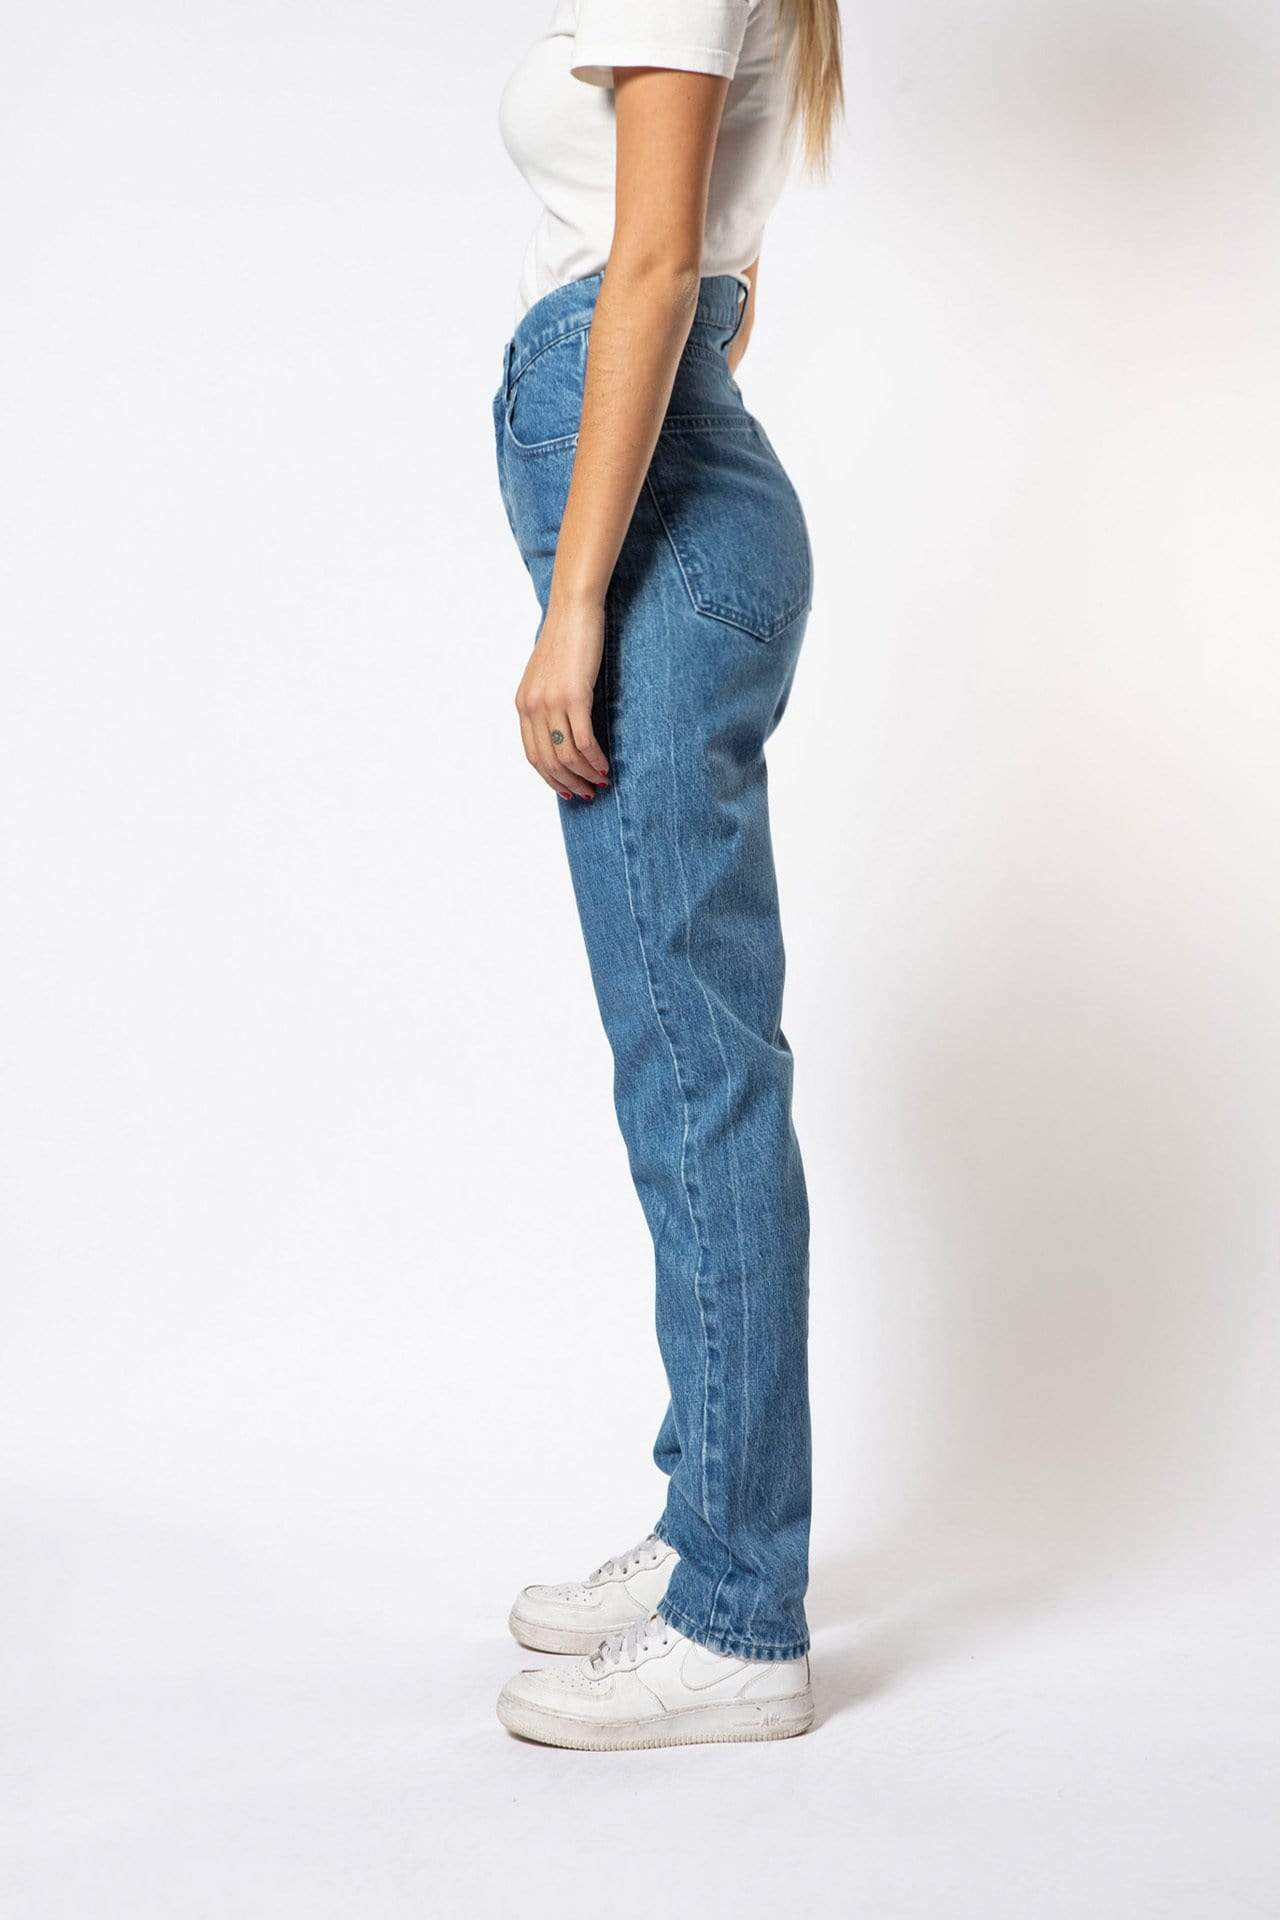 Par.co Denim pant Rosa Jeans in Organic Cotton. sustainable fashion ethical fashion